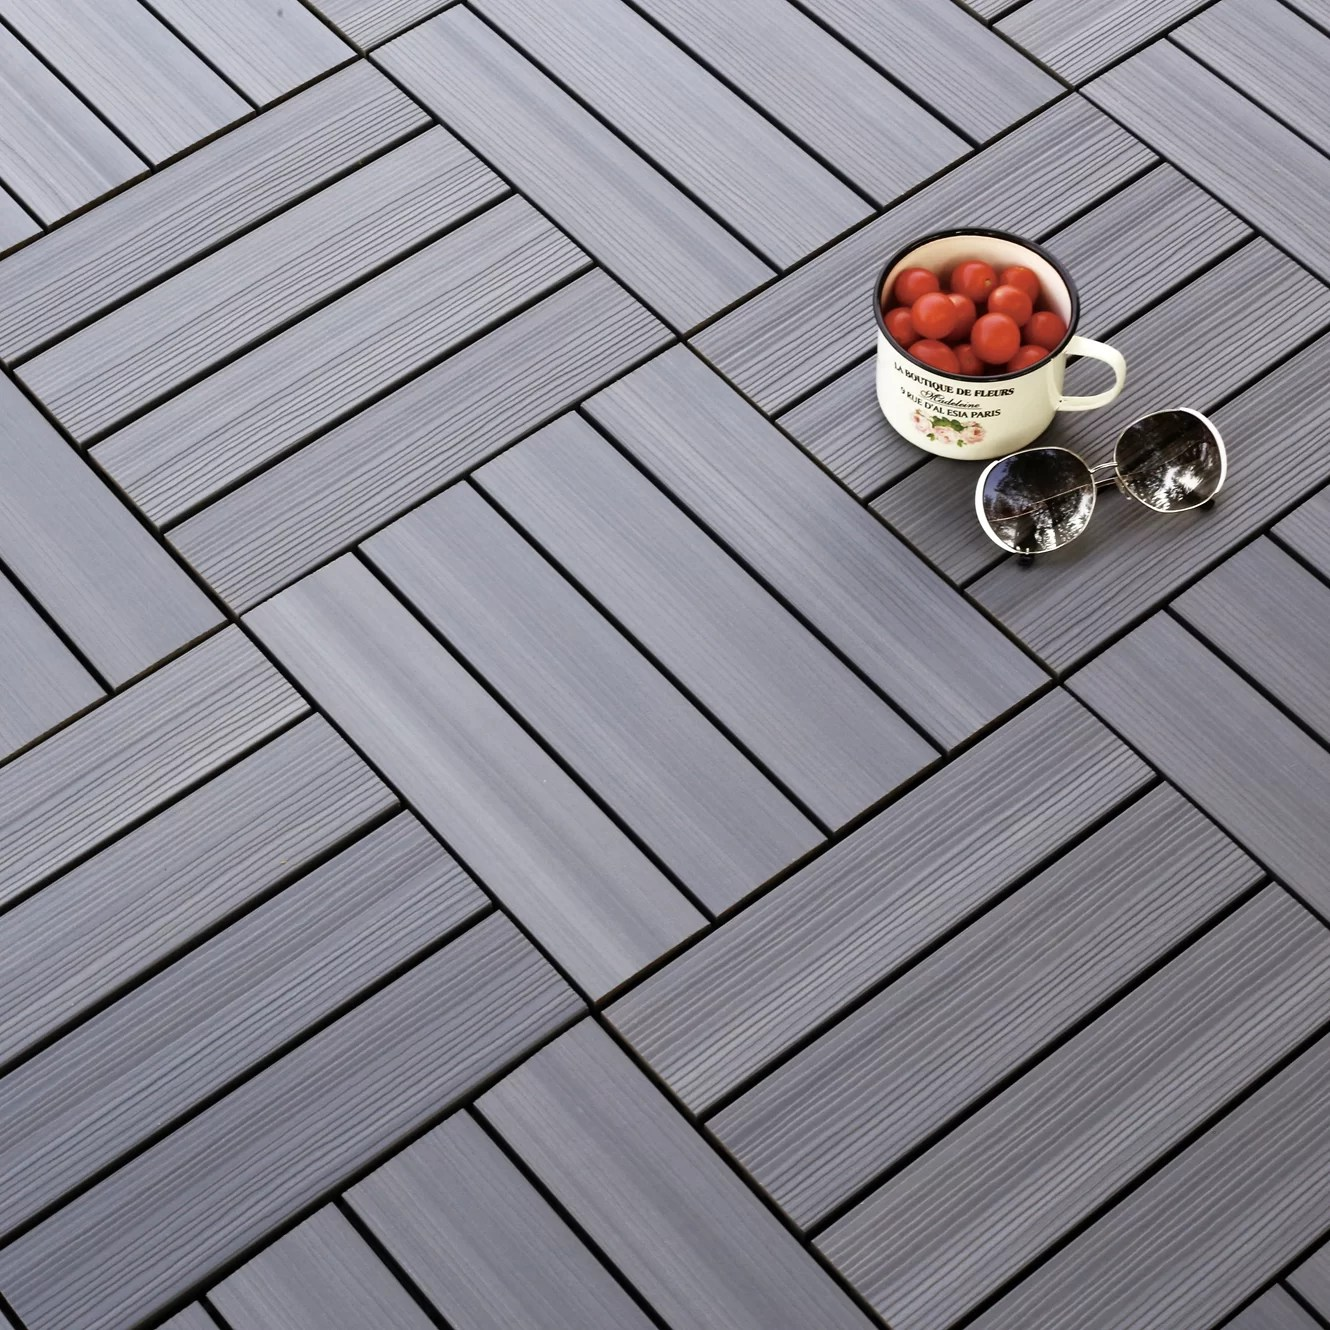 Composite Deck Tiles Newtechwood Ultrashield Westminster Wood 12 Quot X 12 Quot Outdoor